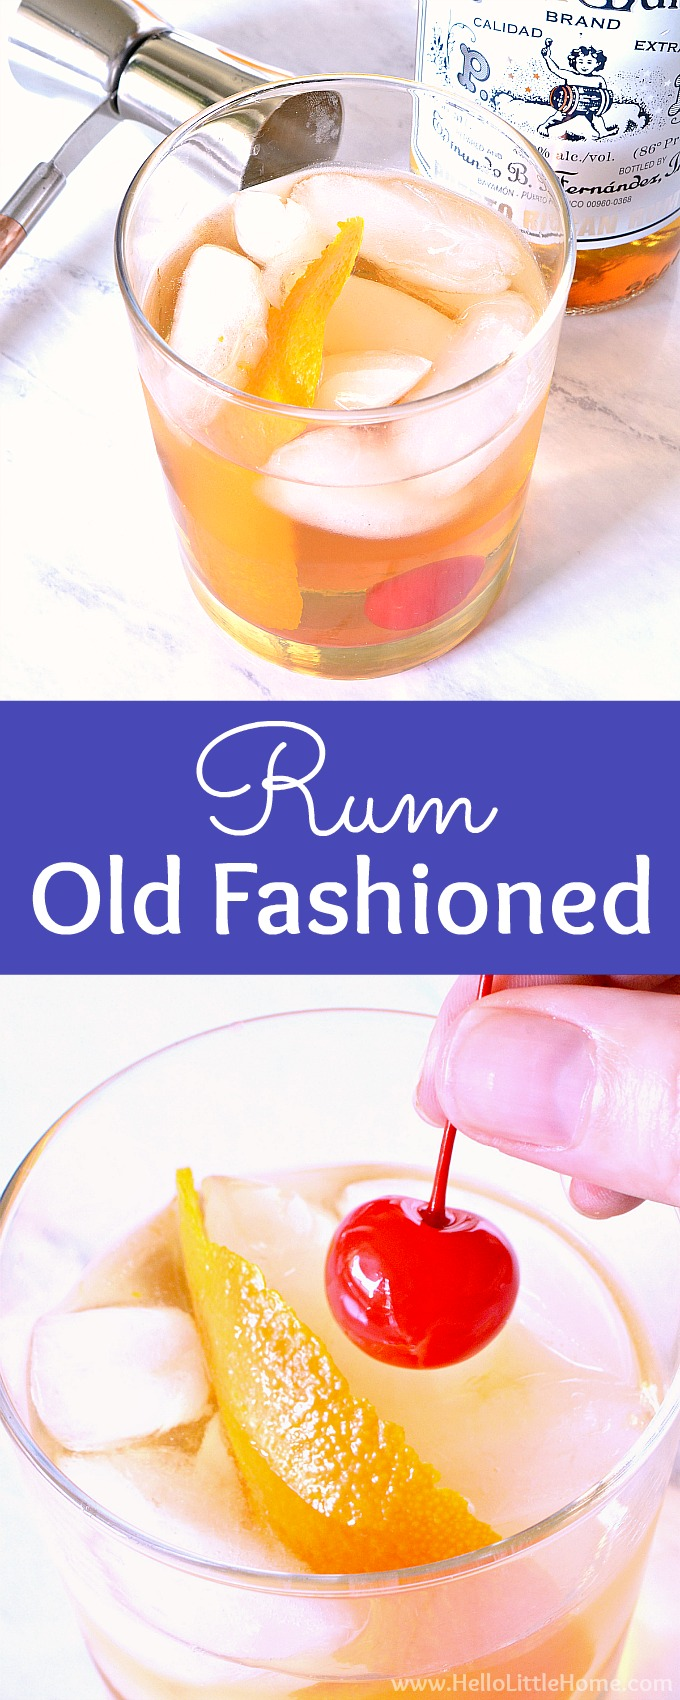 Learn how to make a Rum Old Fashioned Cocktail! This Rum Old Fashioned recipe is a fun twist on the classic Old Fashioned cocktail. Make this Rum Old Fashioned drink from simple, yet high quality ingredients: dark rum, simple syrup, and bitters. This easy dark rum cocktail is perfect for fall, winter, happy hour or a party! | Hello Little Home #oldfashioned #oldfashionedcocktail #cocktailrecipe #cocktails #rumcocktail #darkrum #rumdrink